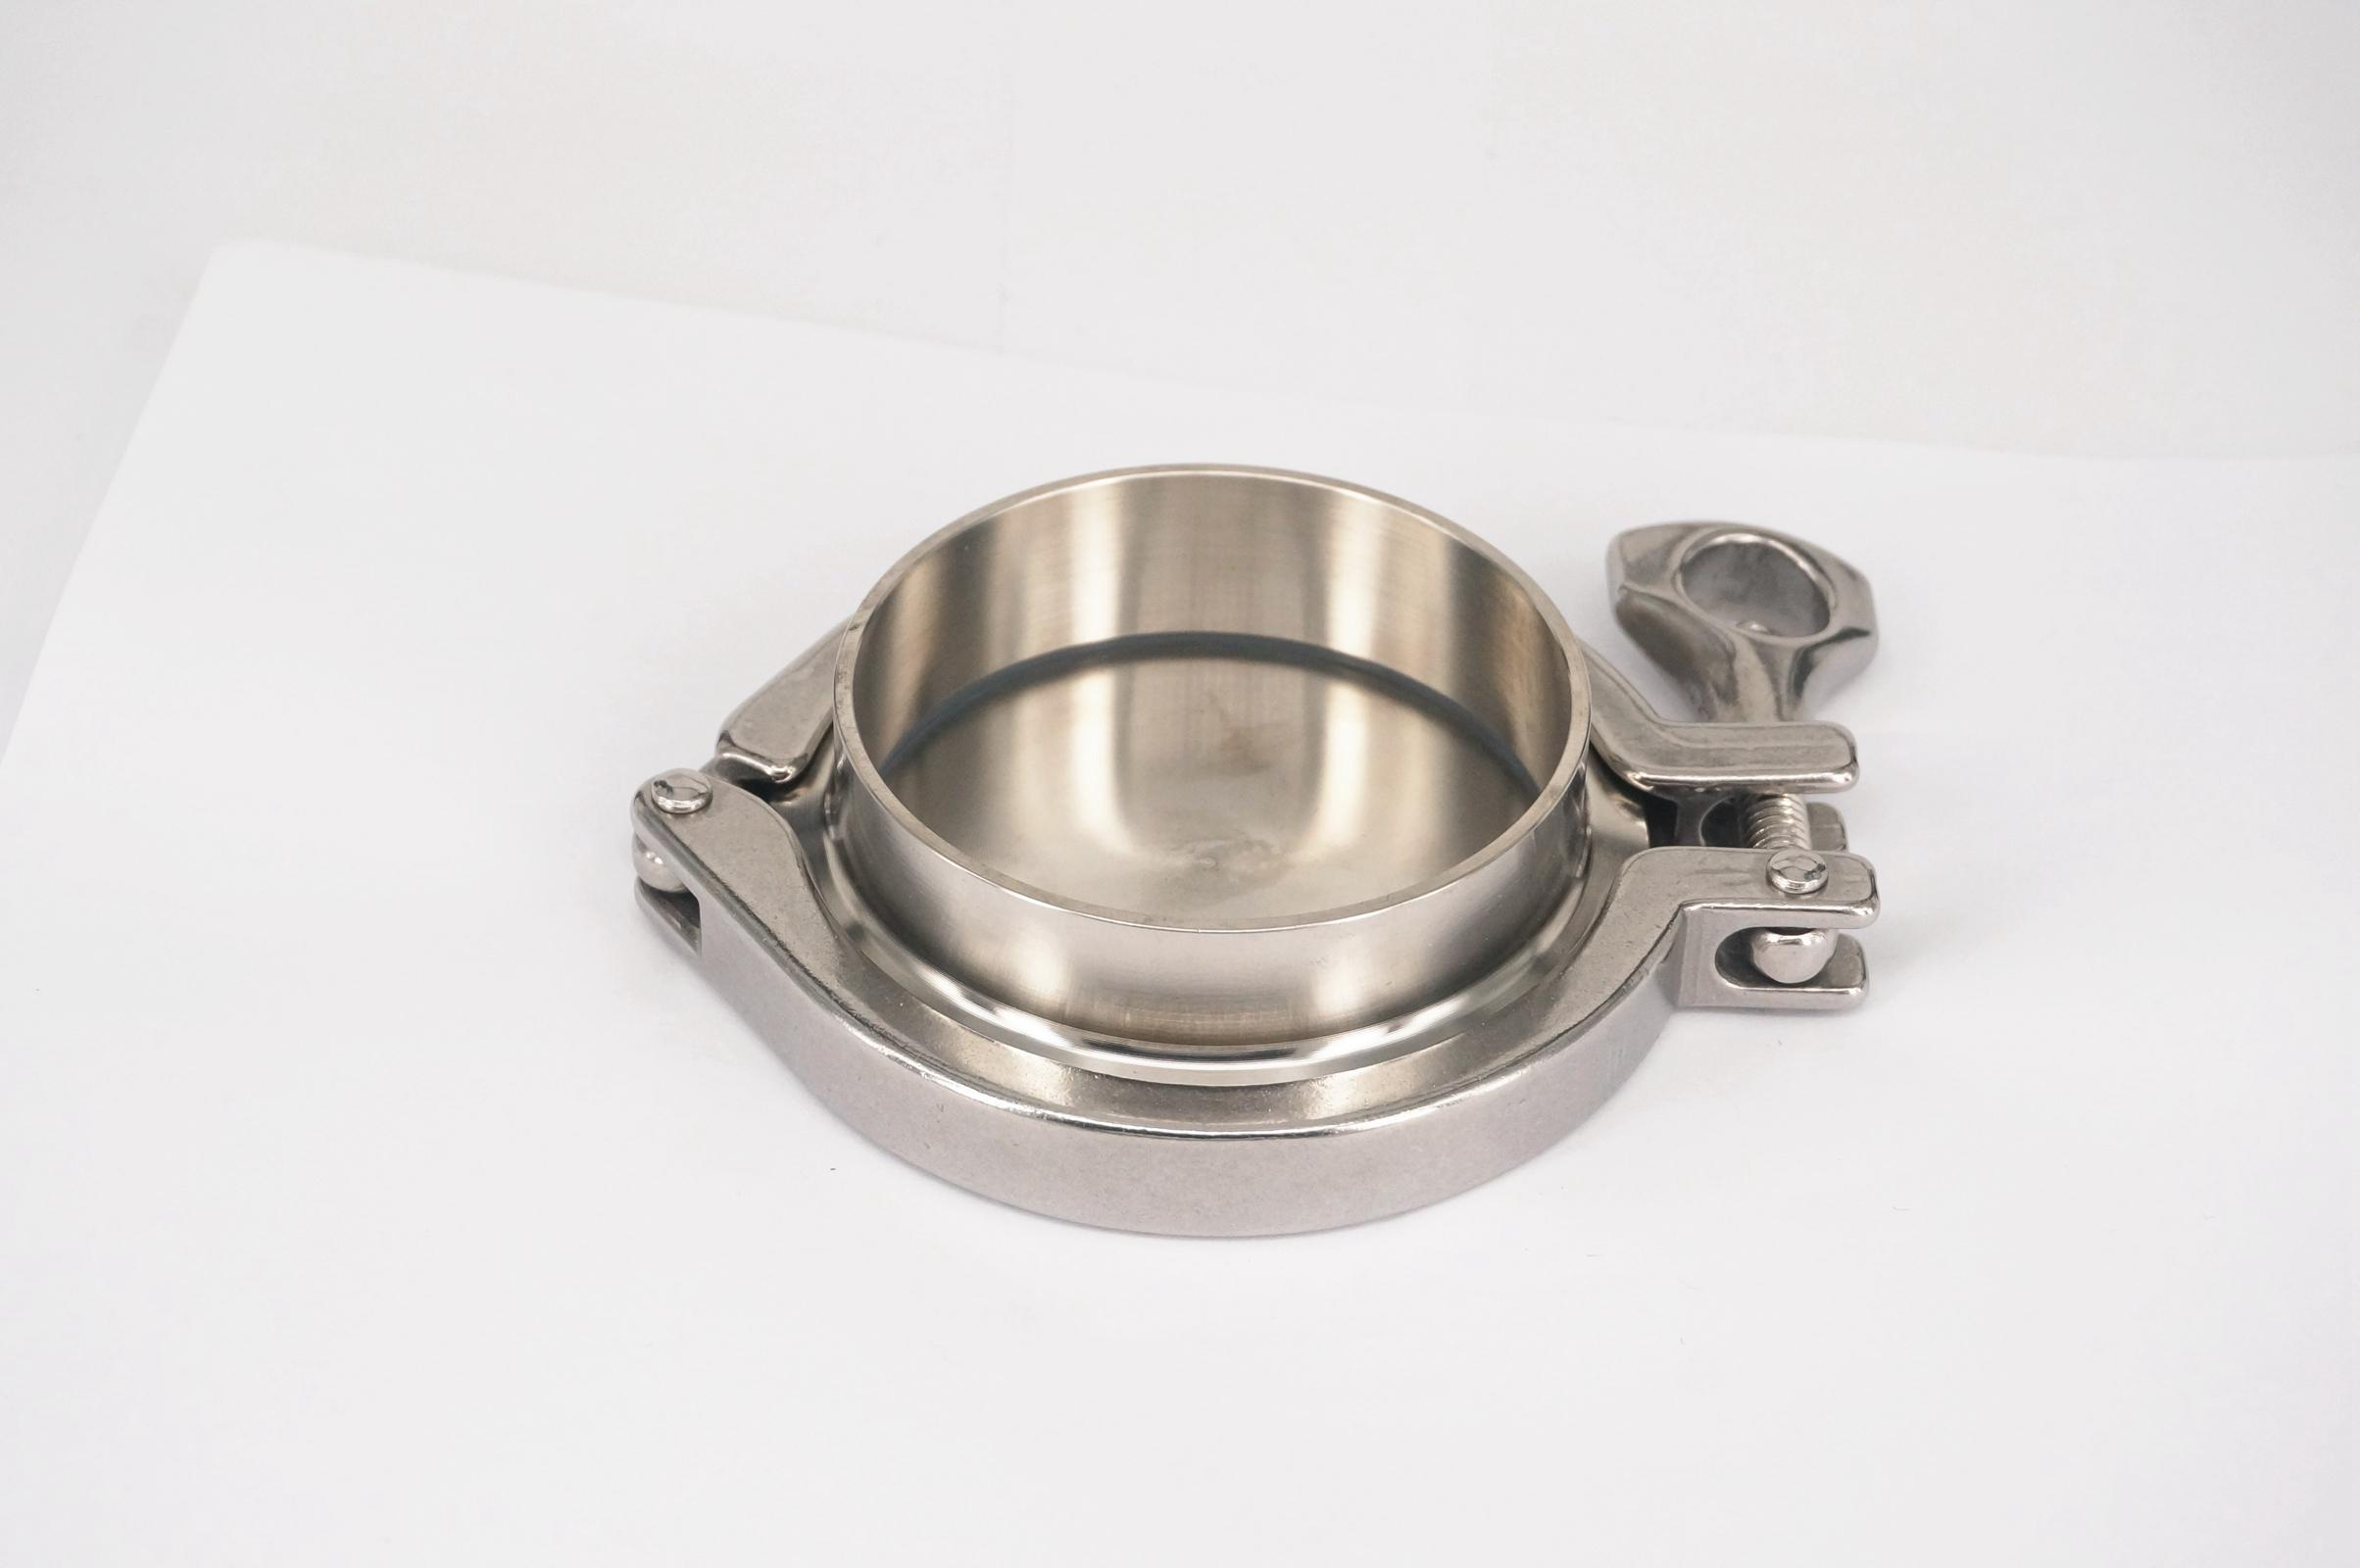 A Set 76mm 3 Sanitary Tri Clamp Weld Ferrule + Tri Clamp + Silicon Gasket + End Cap 304 Stainless steel